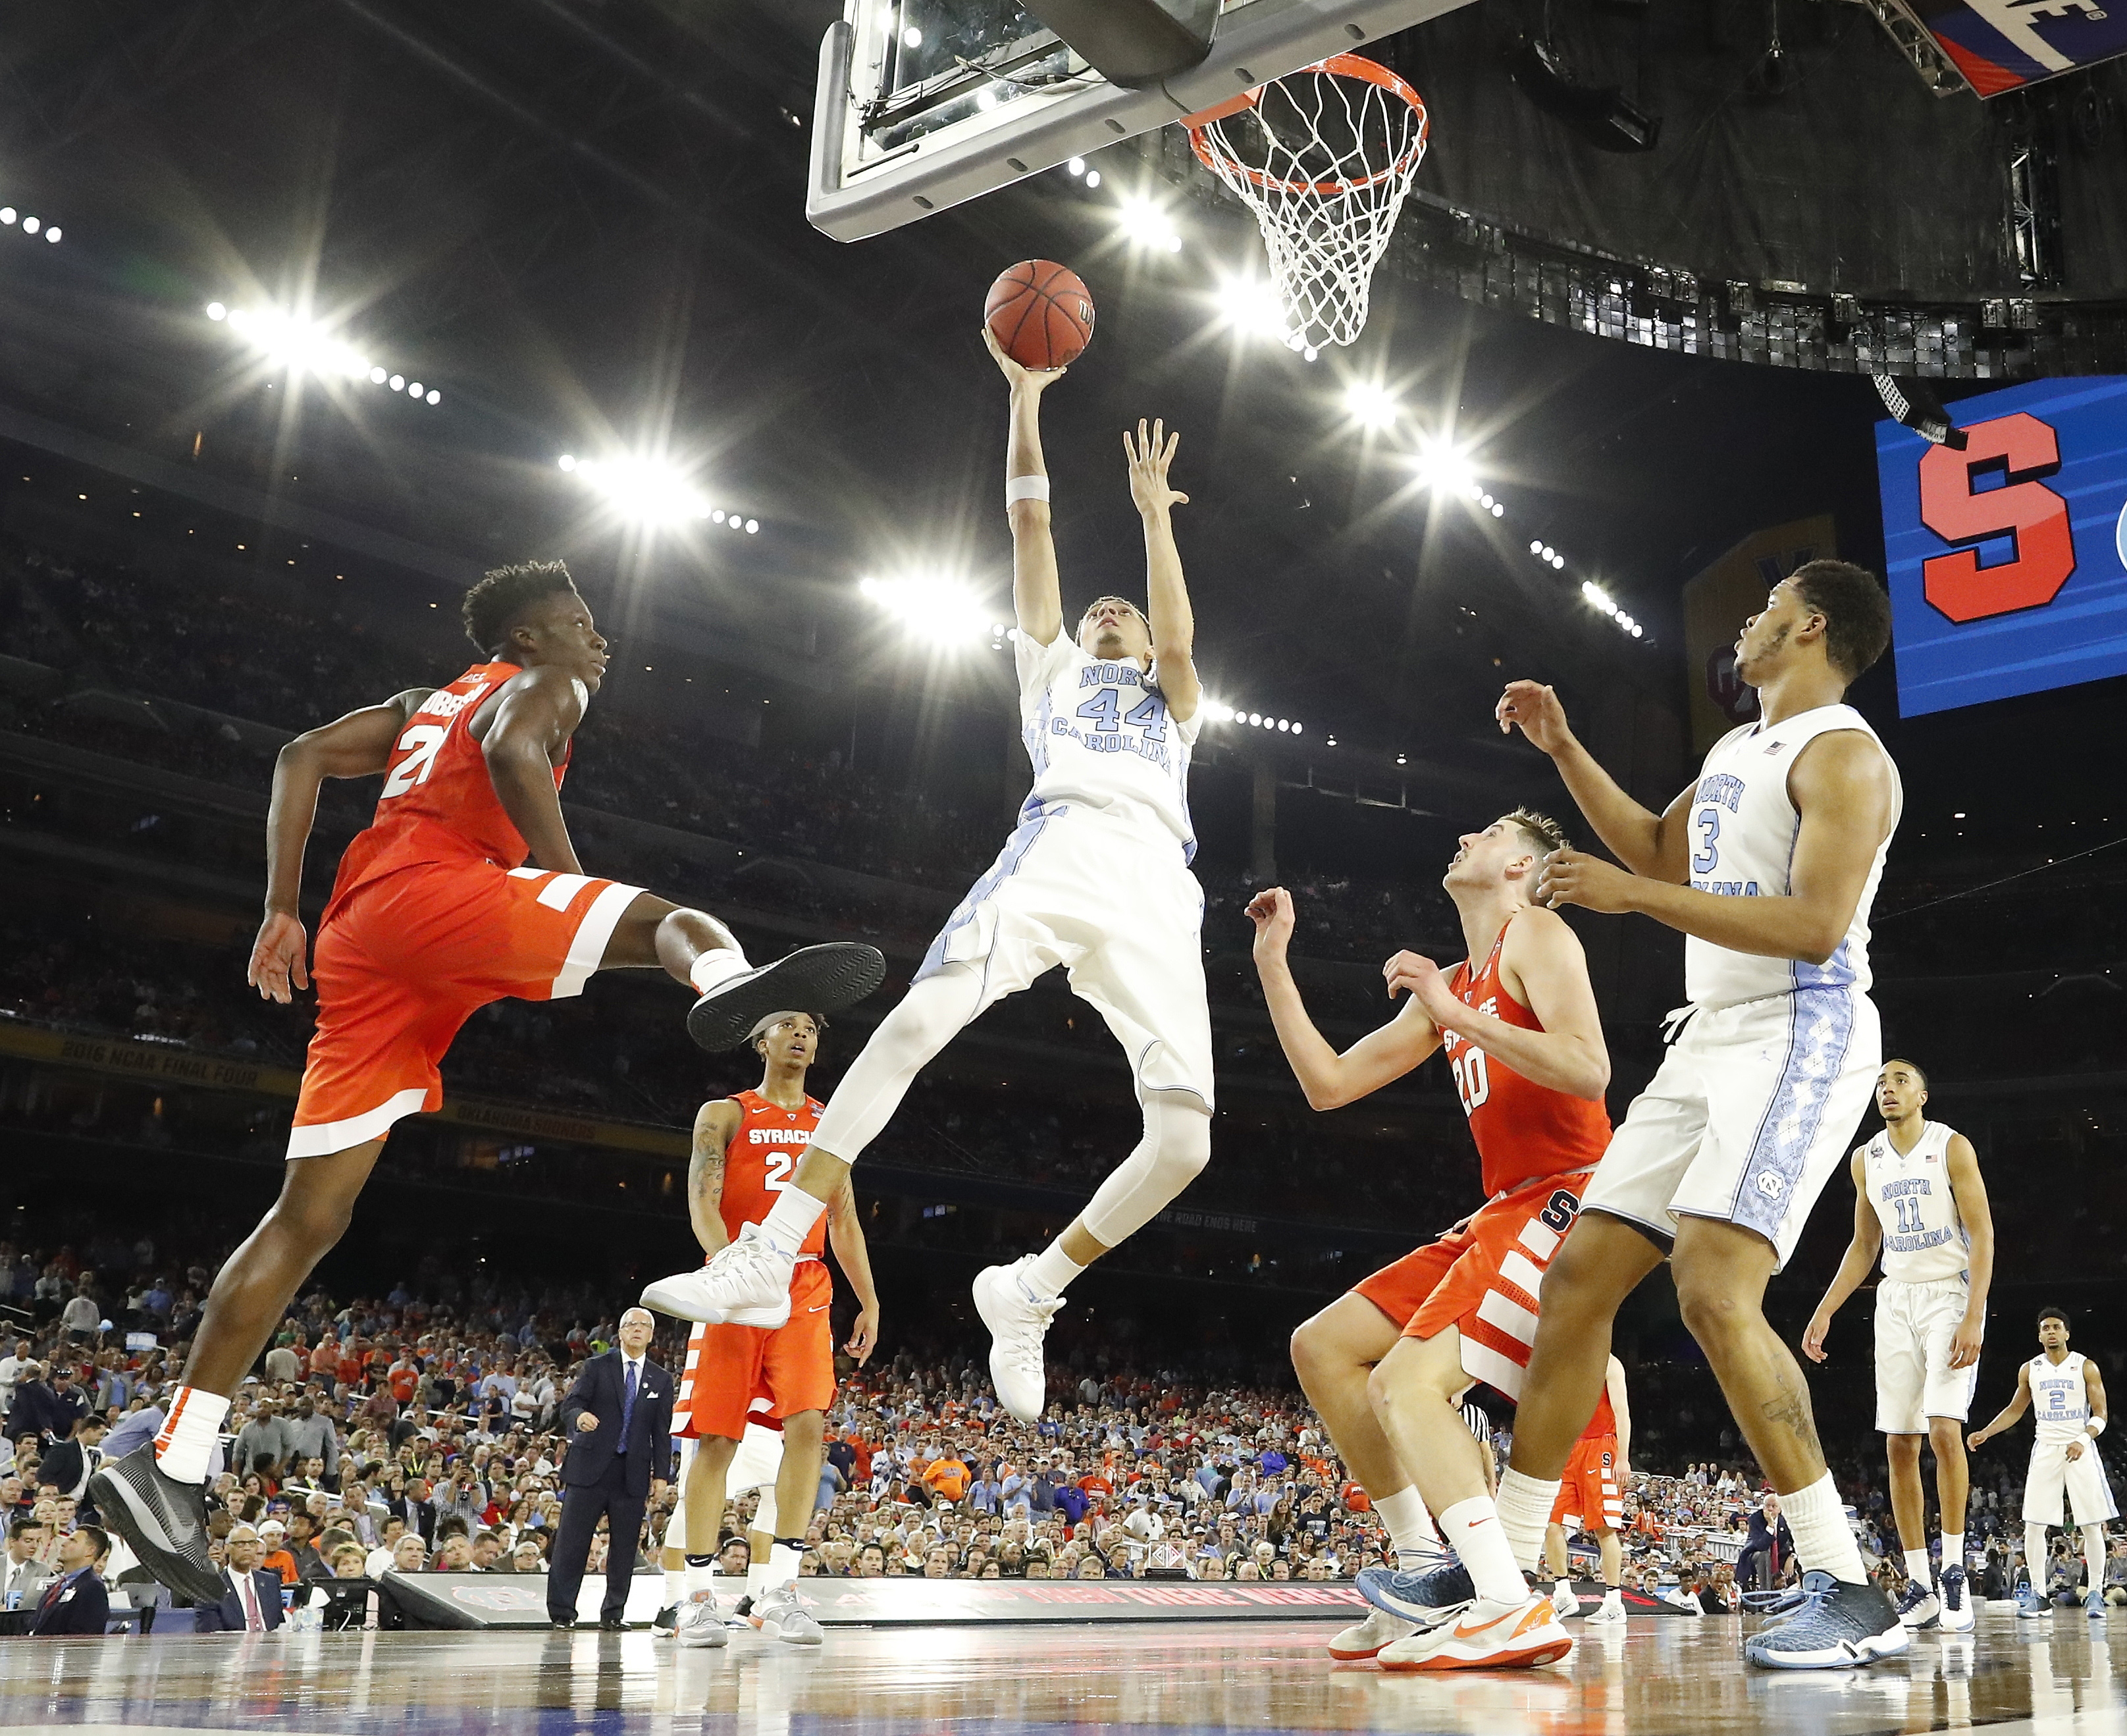 North Carolina forward Justin Jackson (44) shoots against Syracuses during the second half of the NCAA Final Four tournament college basketball semifinal game Saturday, April 2, 2016, in Houston. (AP Photo/David J. Phillip)